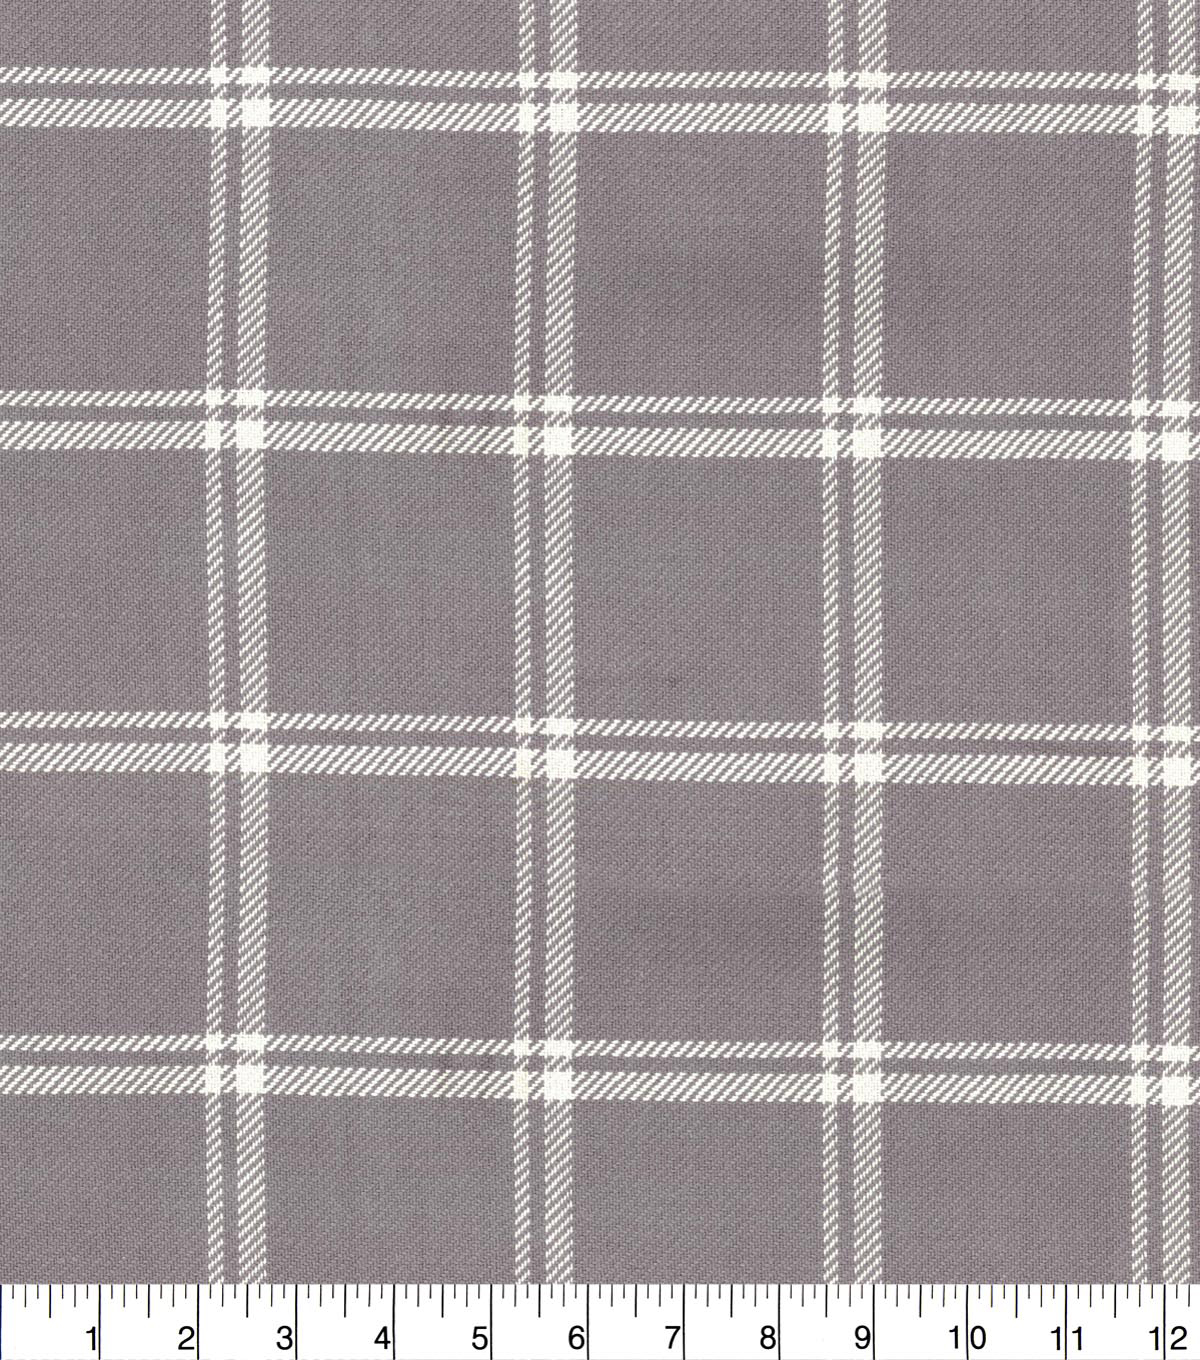 Waverly Upholstery Fabric 54''-Monsoon Bloomsbury Plaid